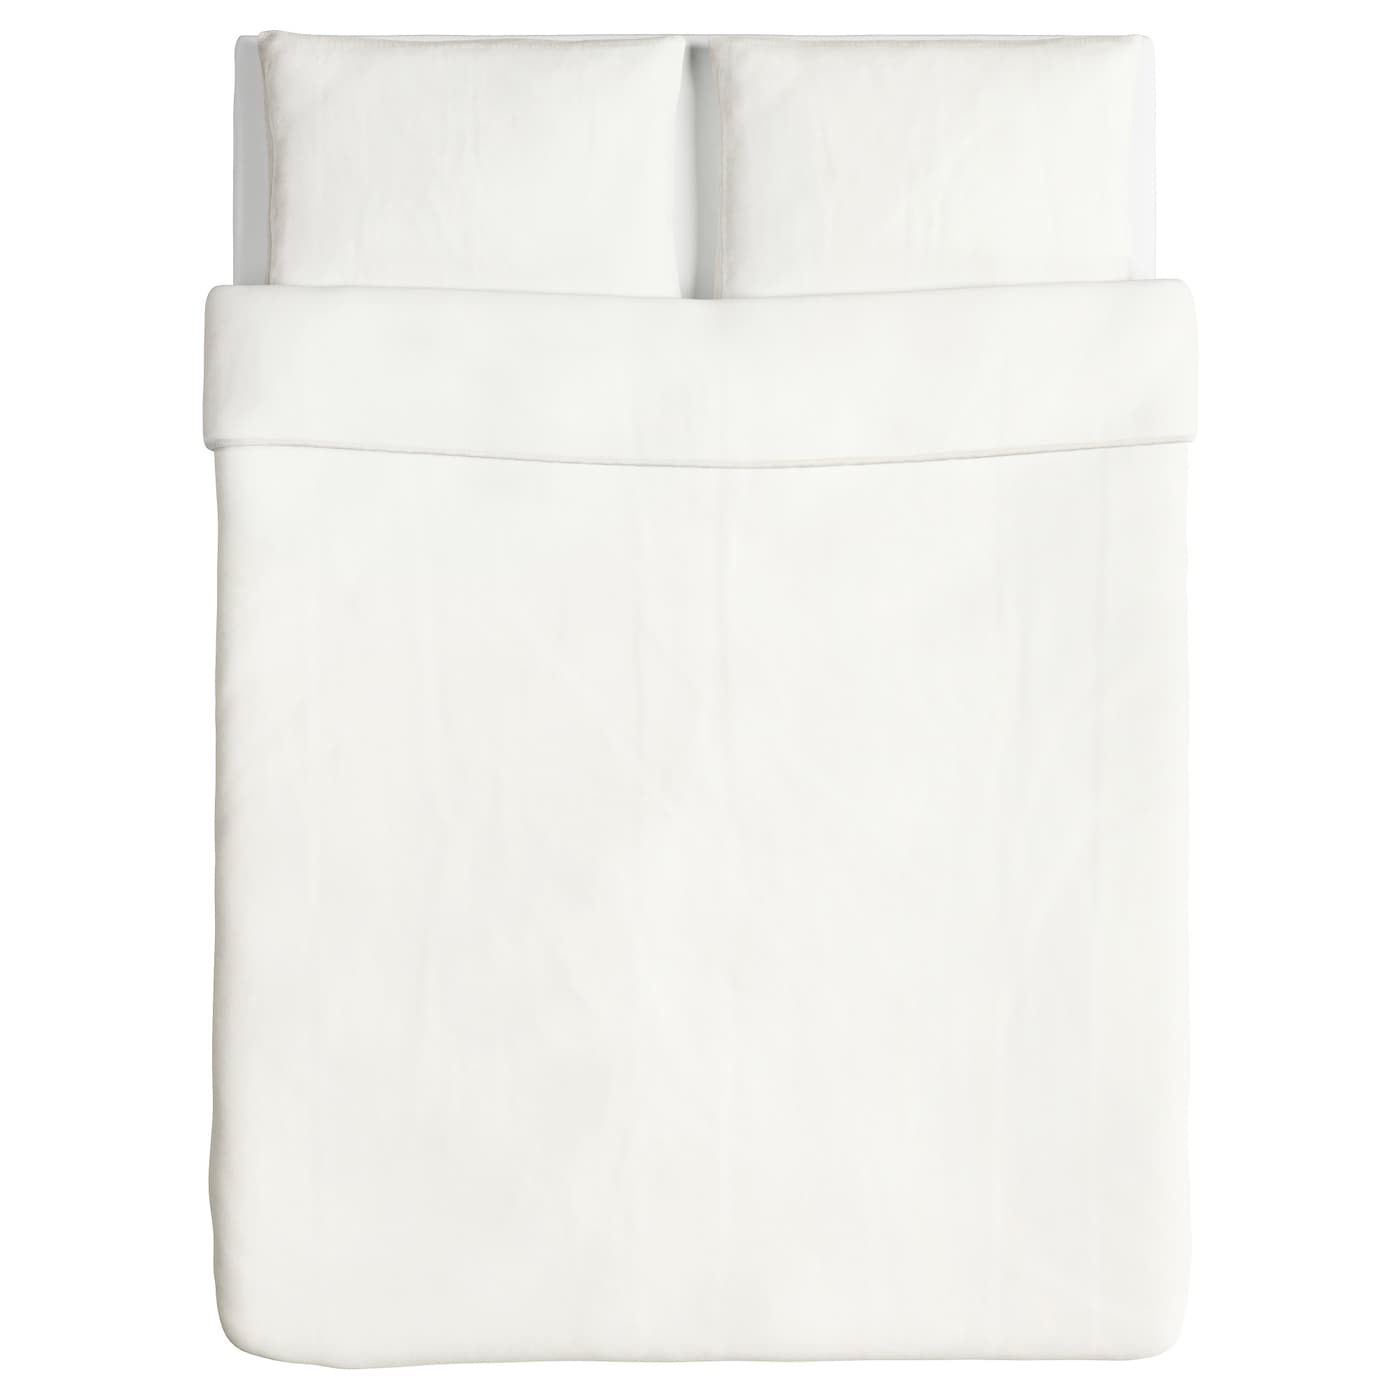 IKEA ÄNGSLILJA quilt cover and 2 pillowcases Cotton, feels soft and nice against your skin.